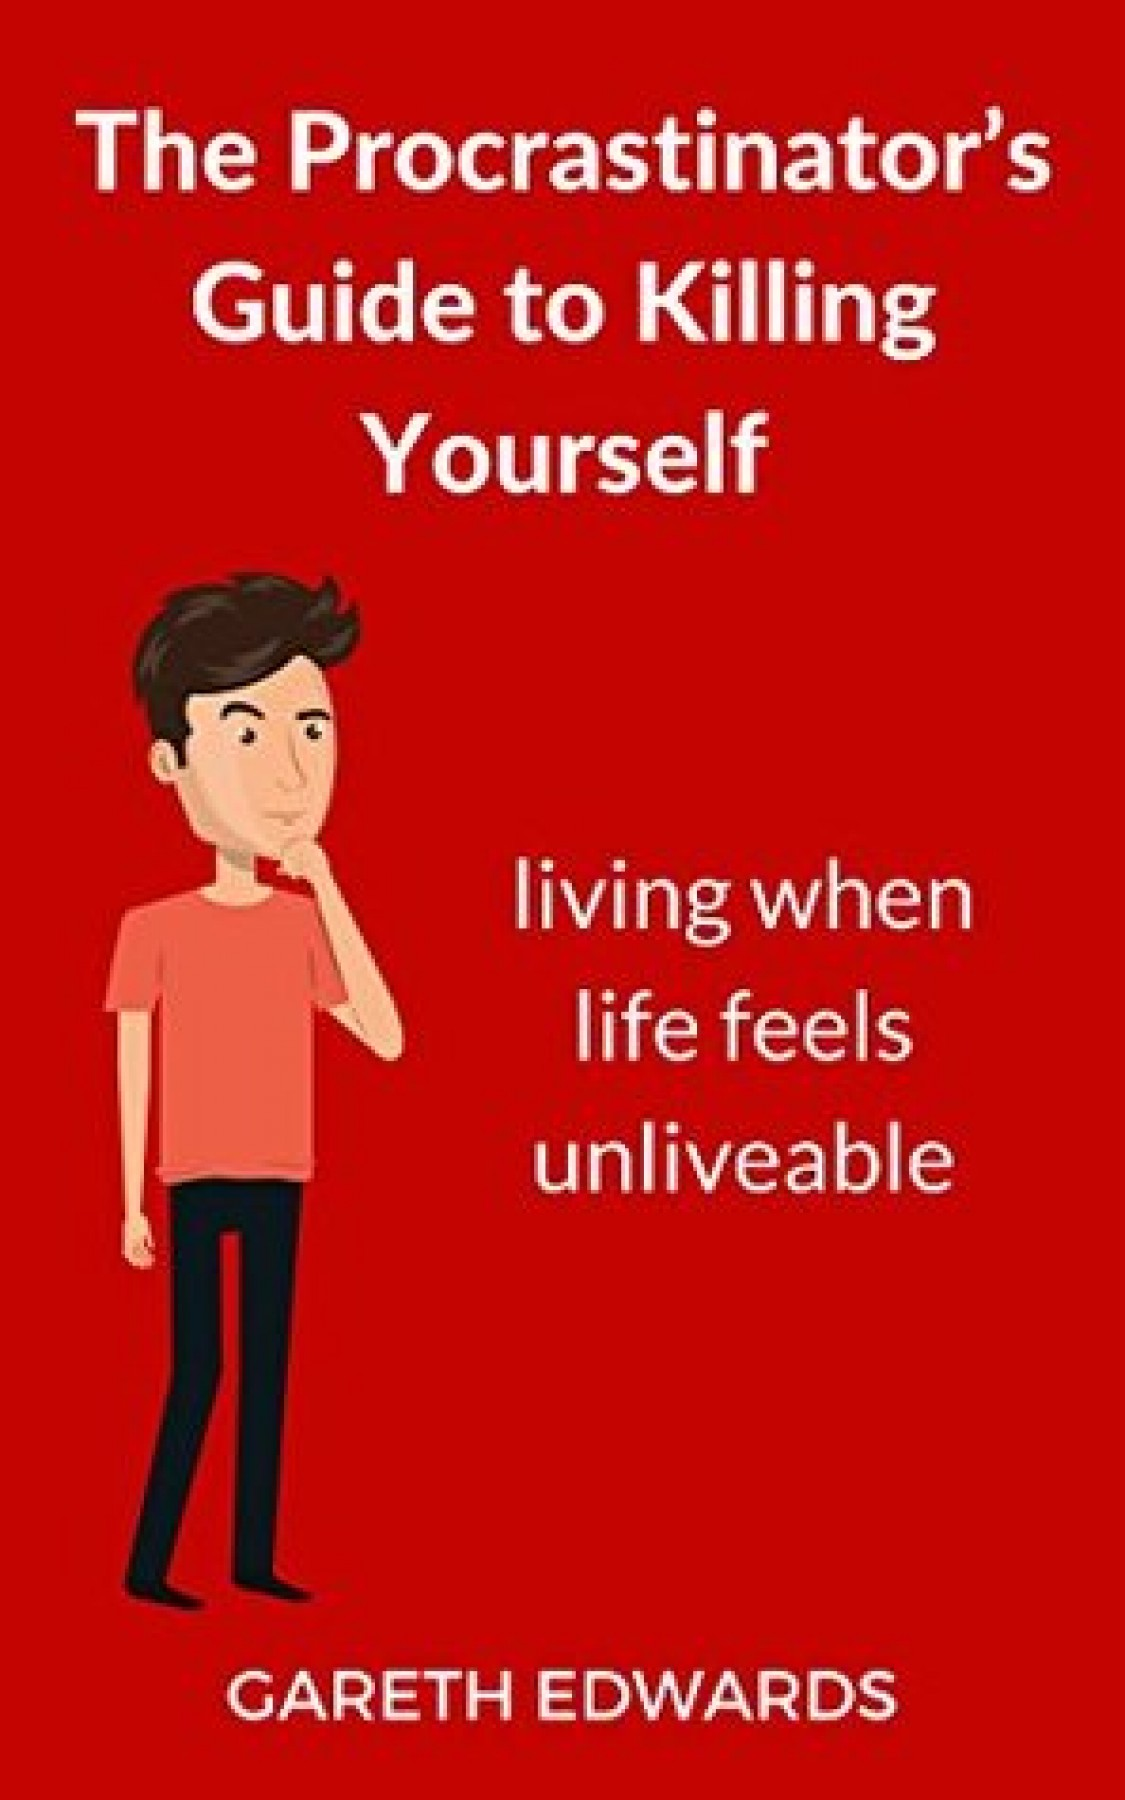 The procrastinator's guide to killing yourself: Living when life feels unliveable